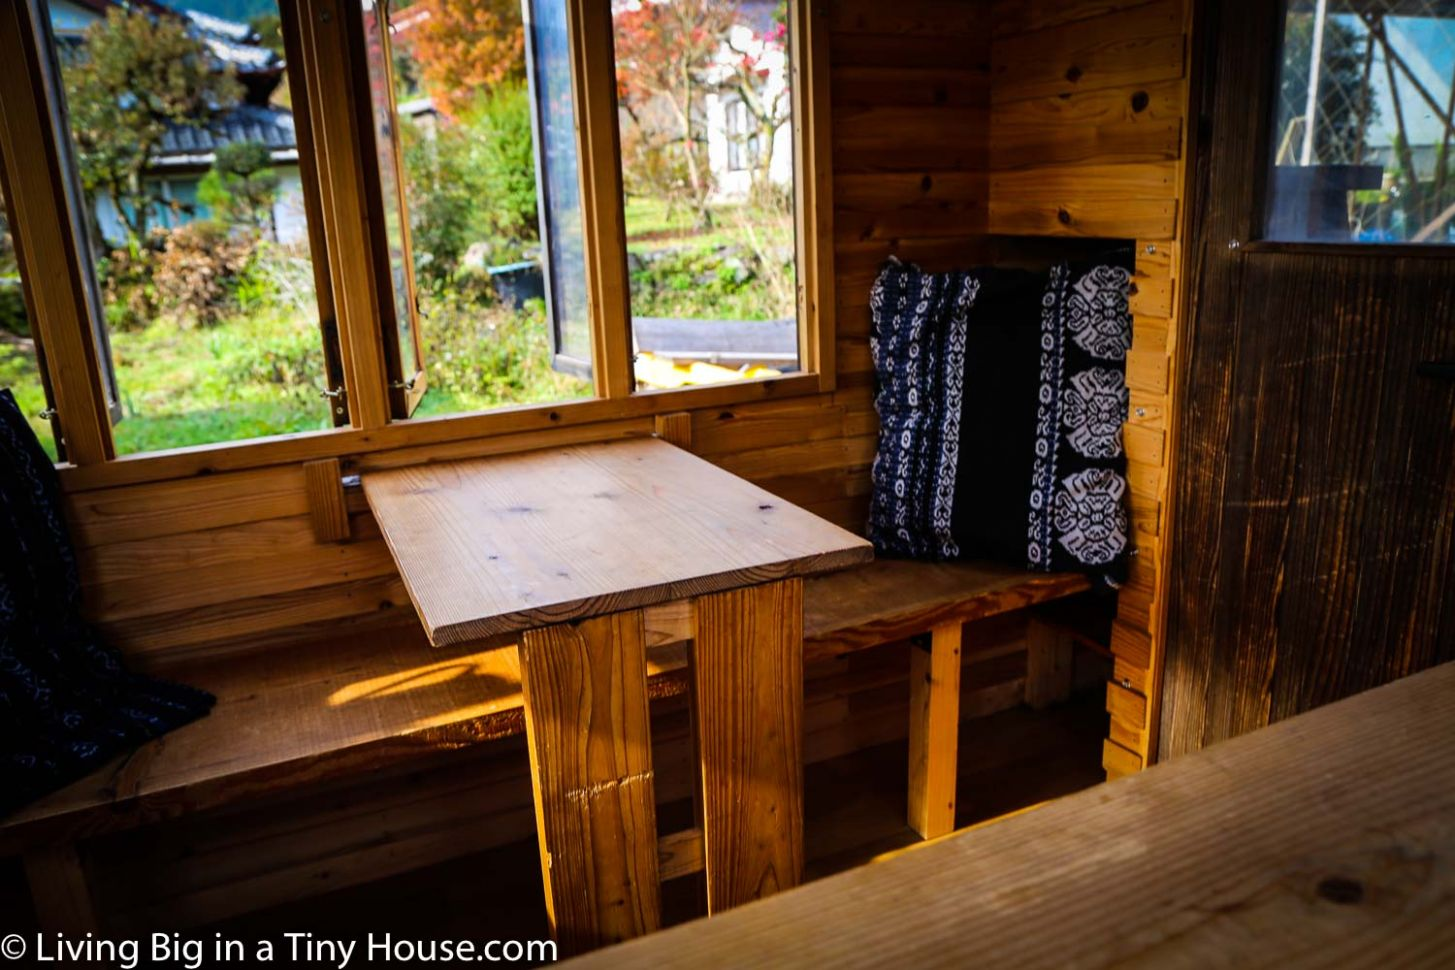 Master Craftsman In Japan Builds Amazing Tiny House On Wheels ..